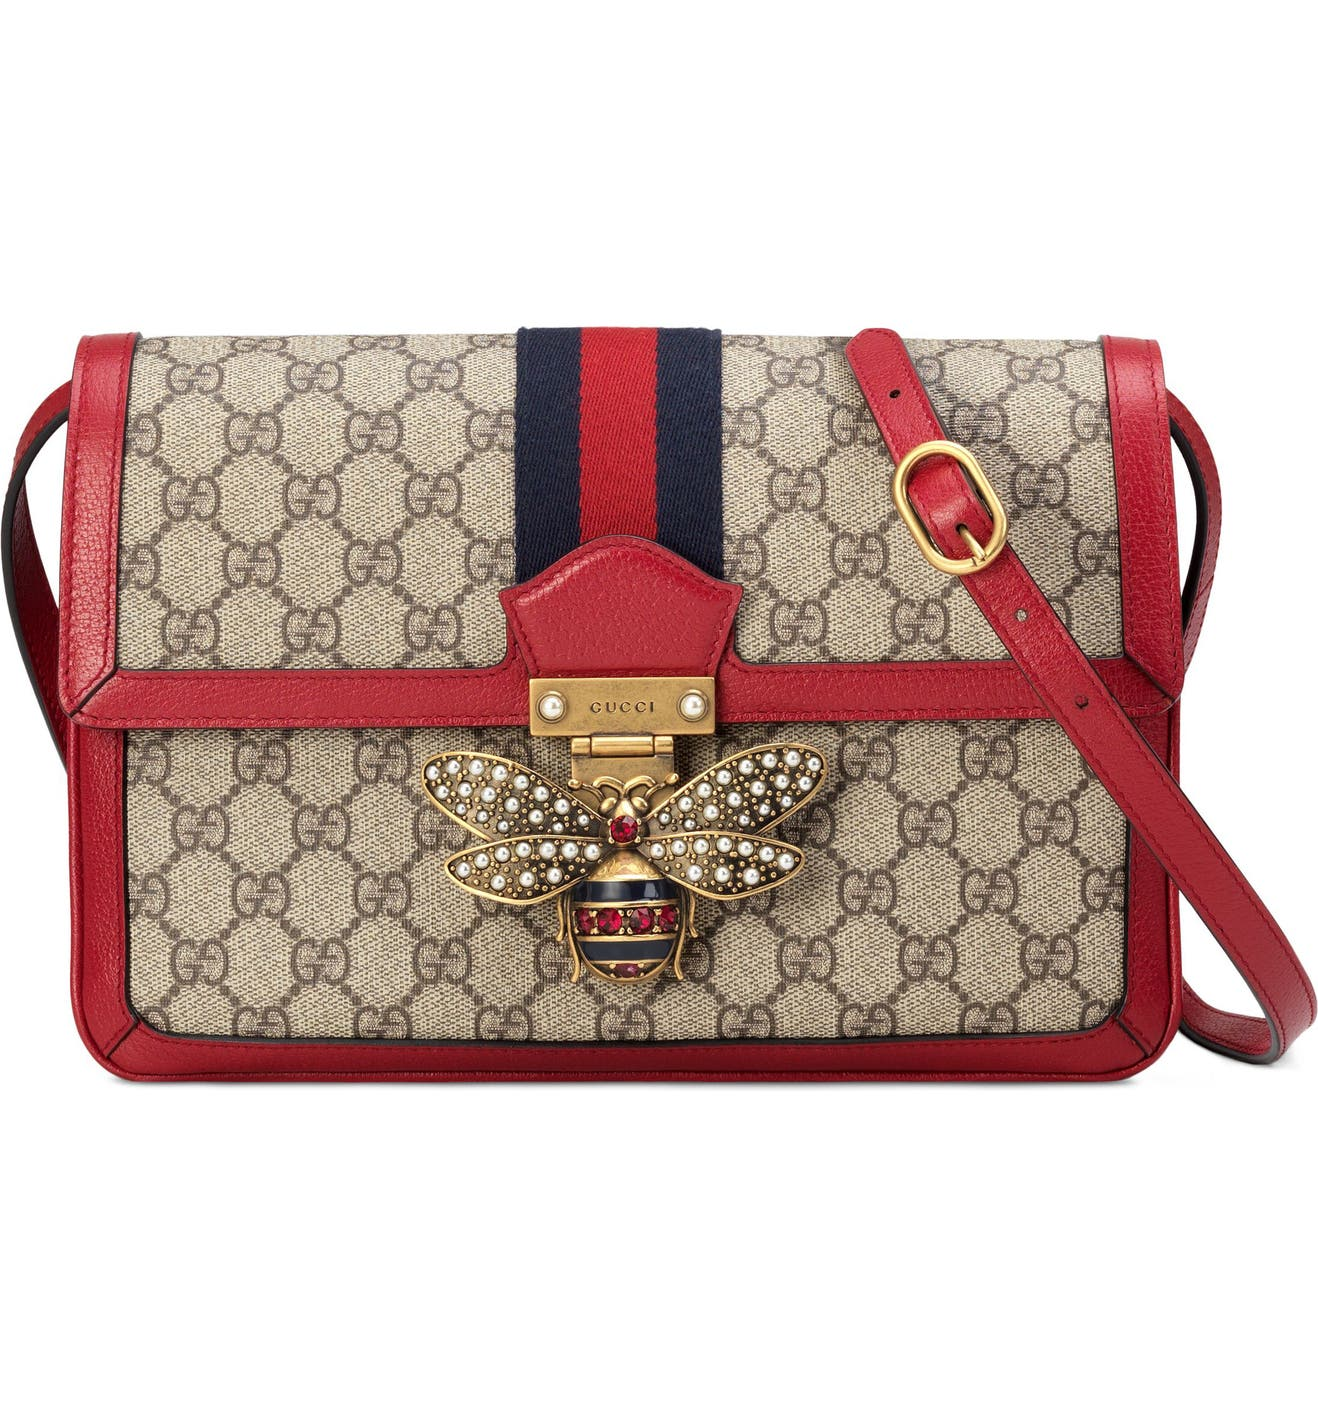 16f01716cd28 Gucci Queen Margaret GG Supreme Small Crossbody Bag | Nordstrom